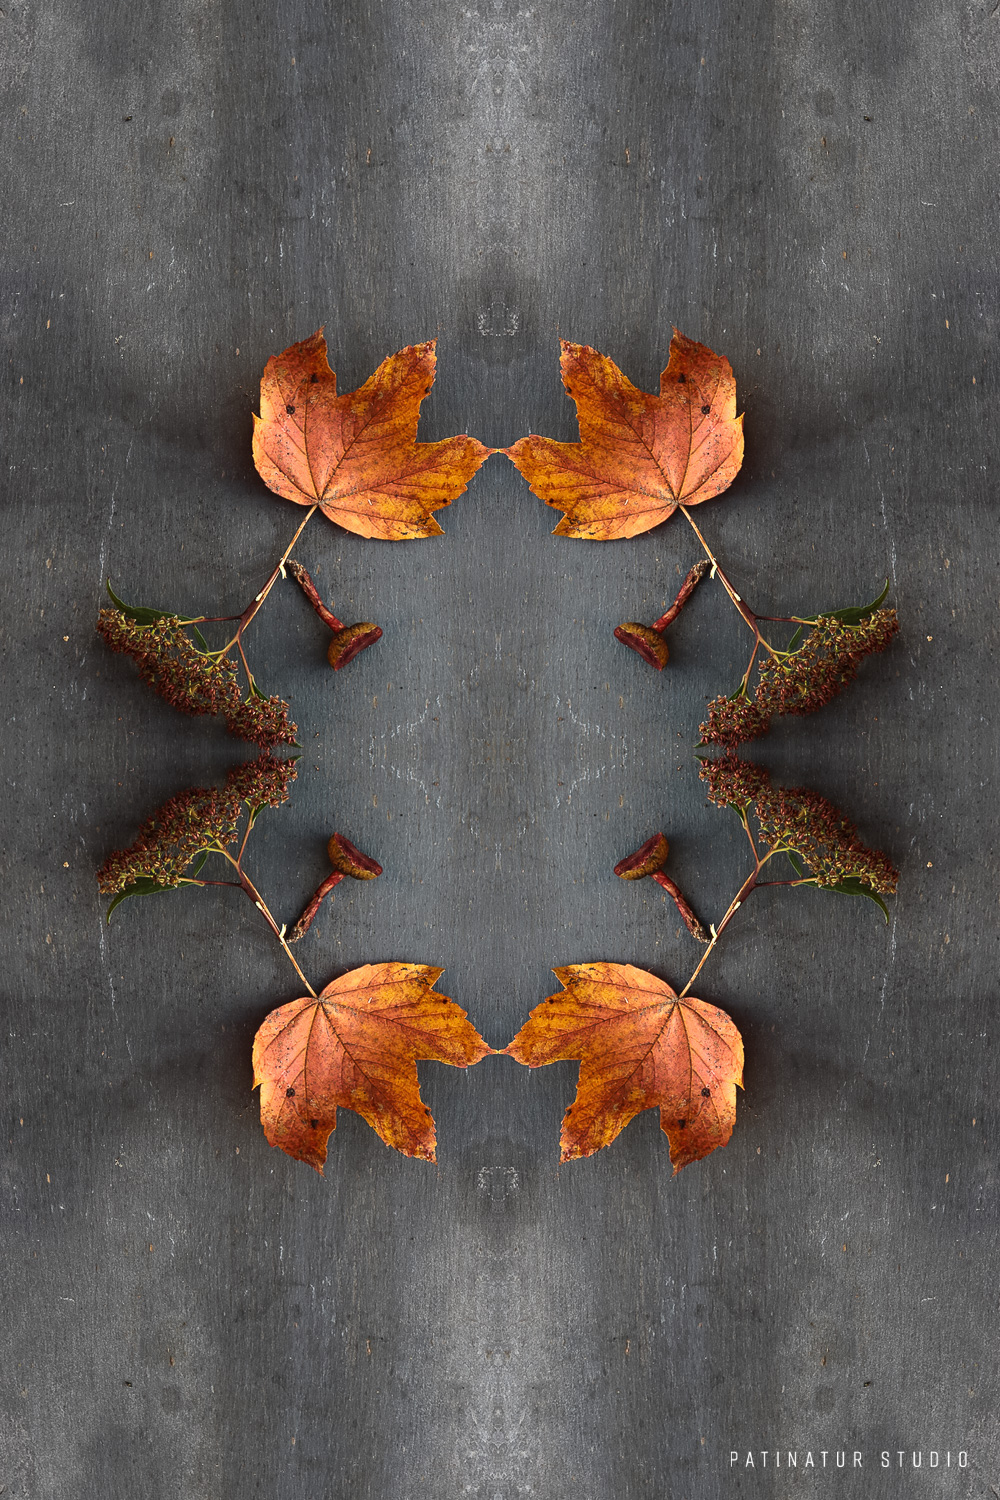 Photo art | Botanical caleidoscope in orange and brown